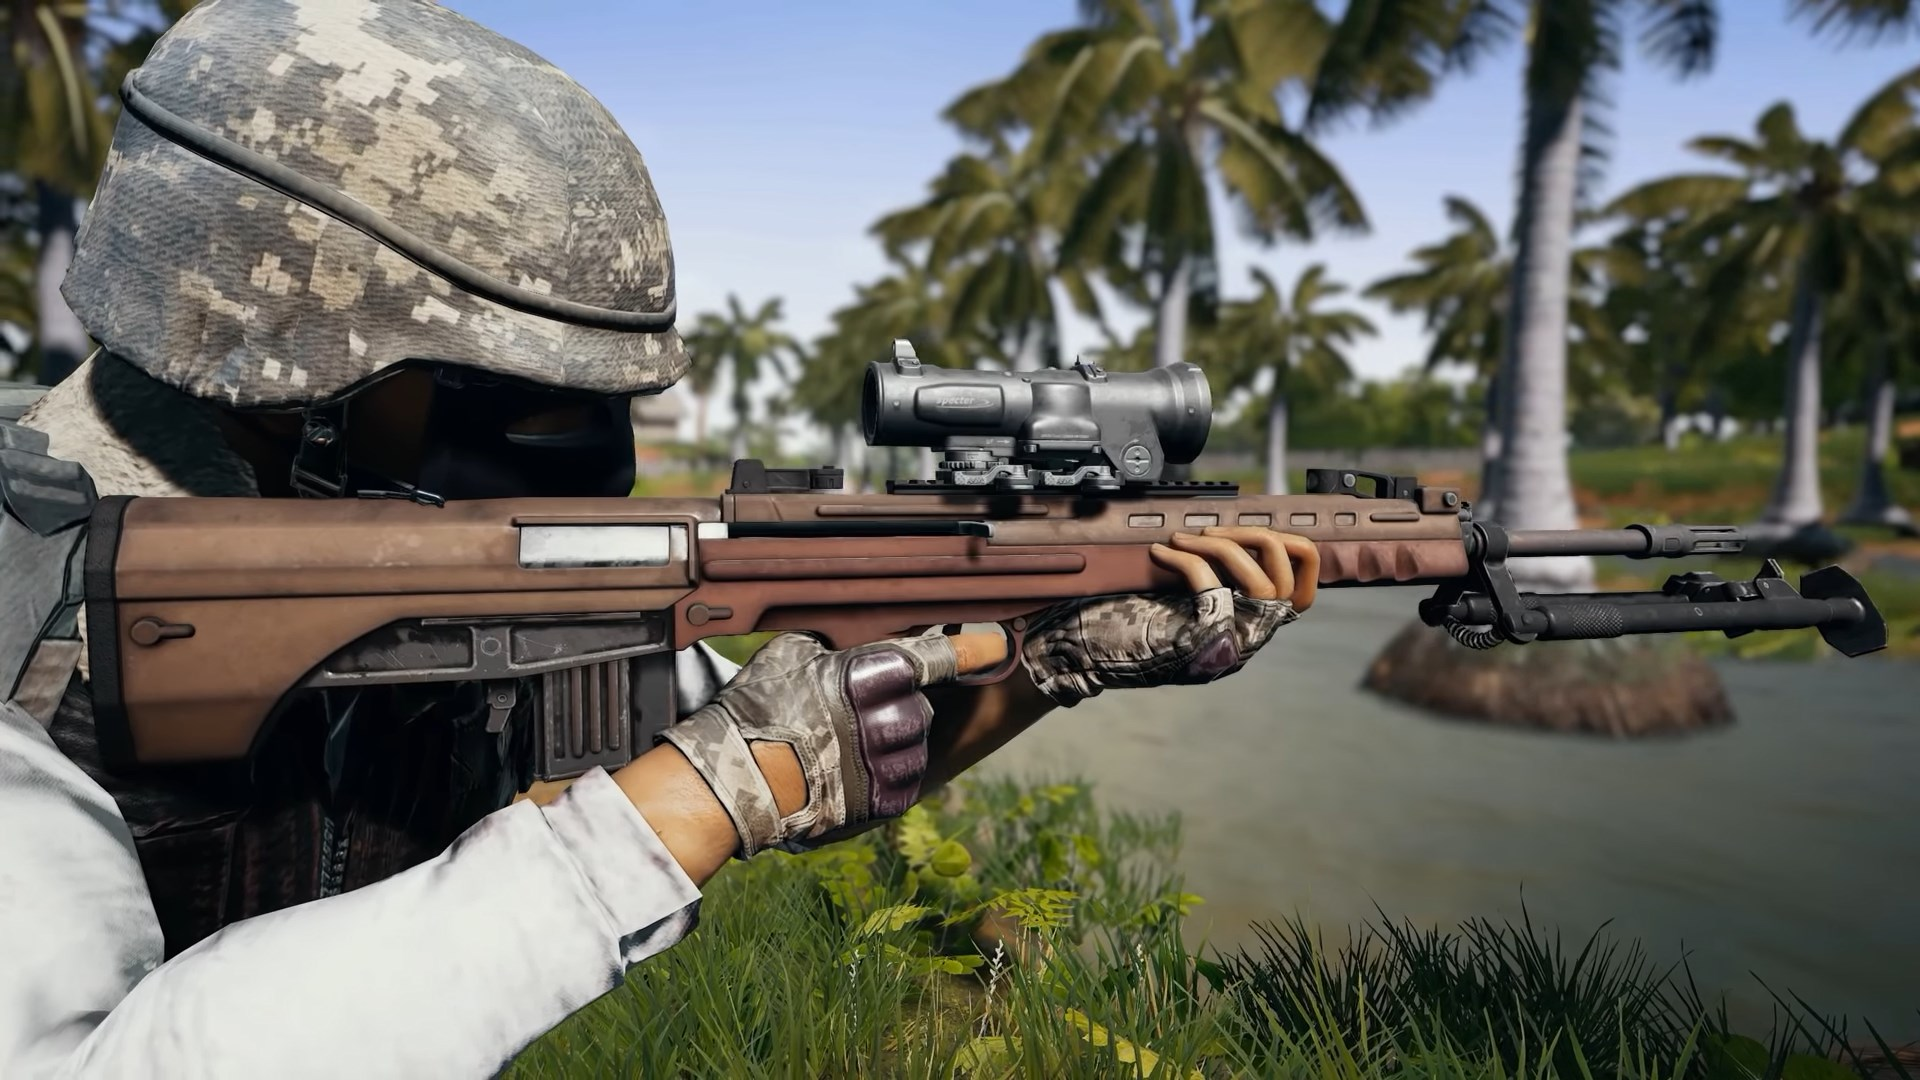 Pubg S Sanhok Map Is Getting A New Dmr And A New Vehicle Soon Vg247